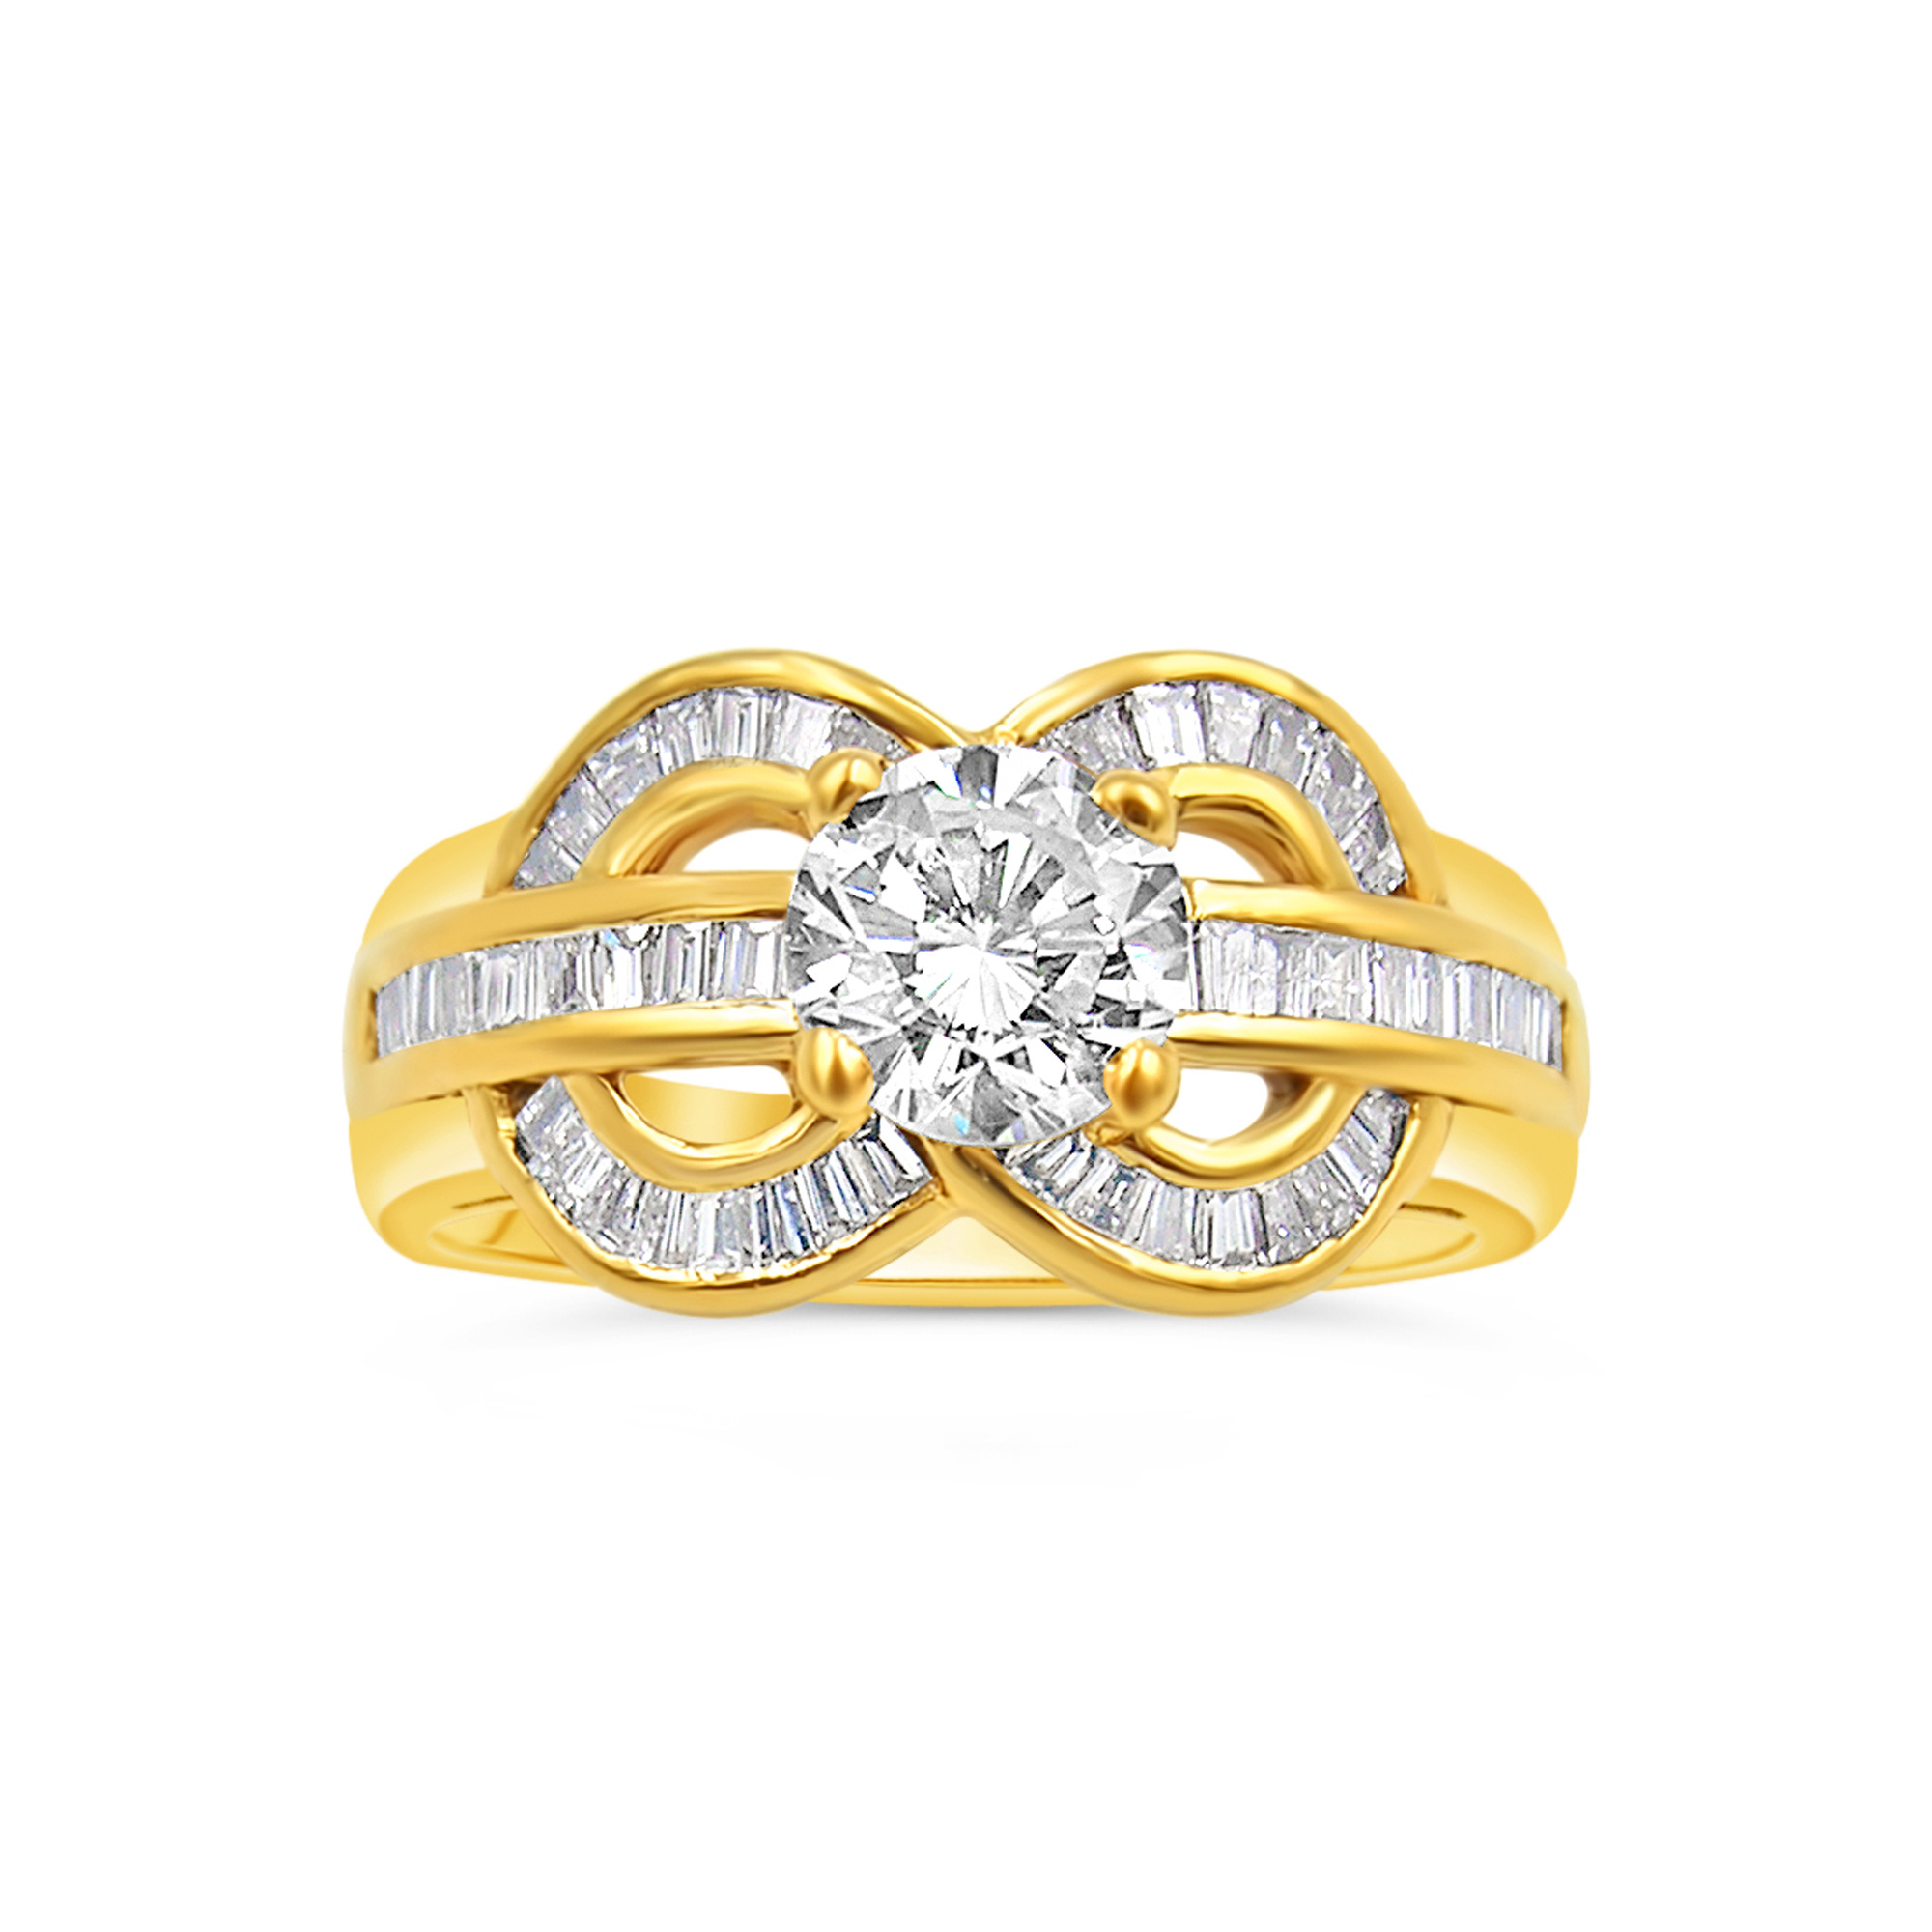 18kt yellow gold engagement ring with 1.62 ct diamonds